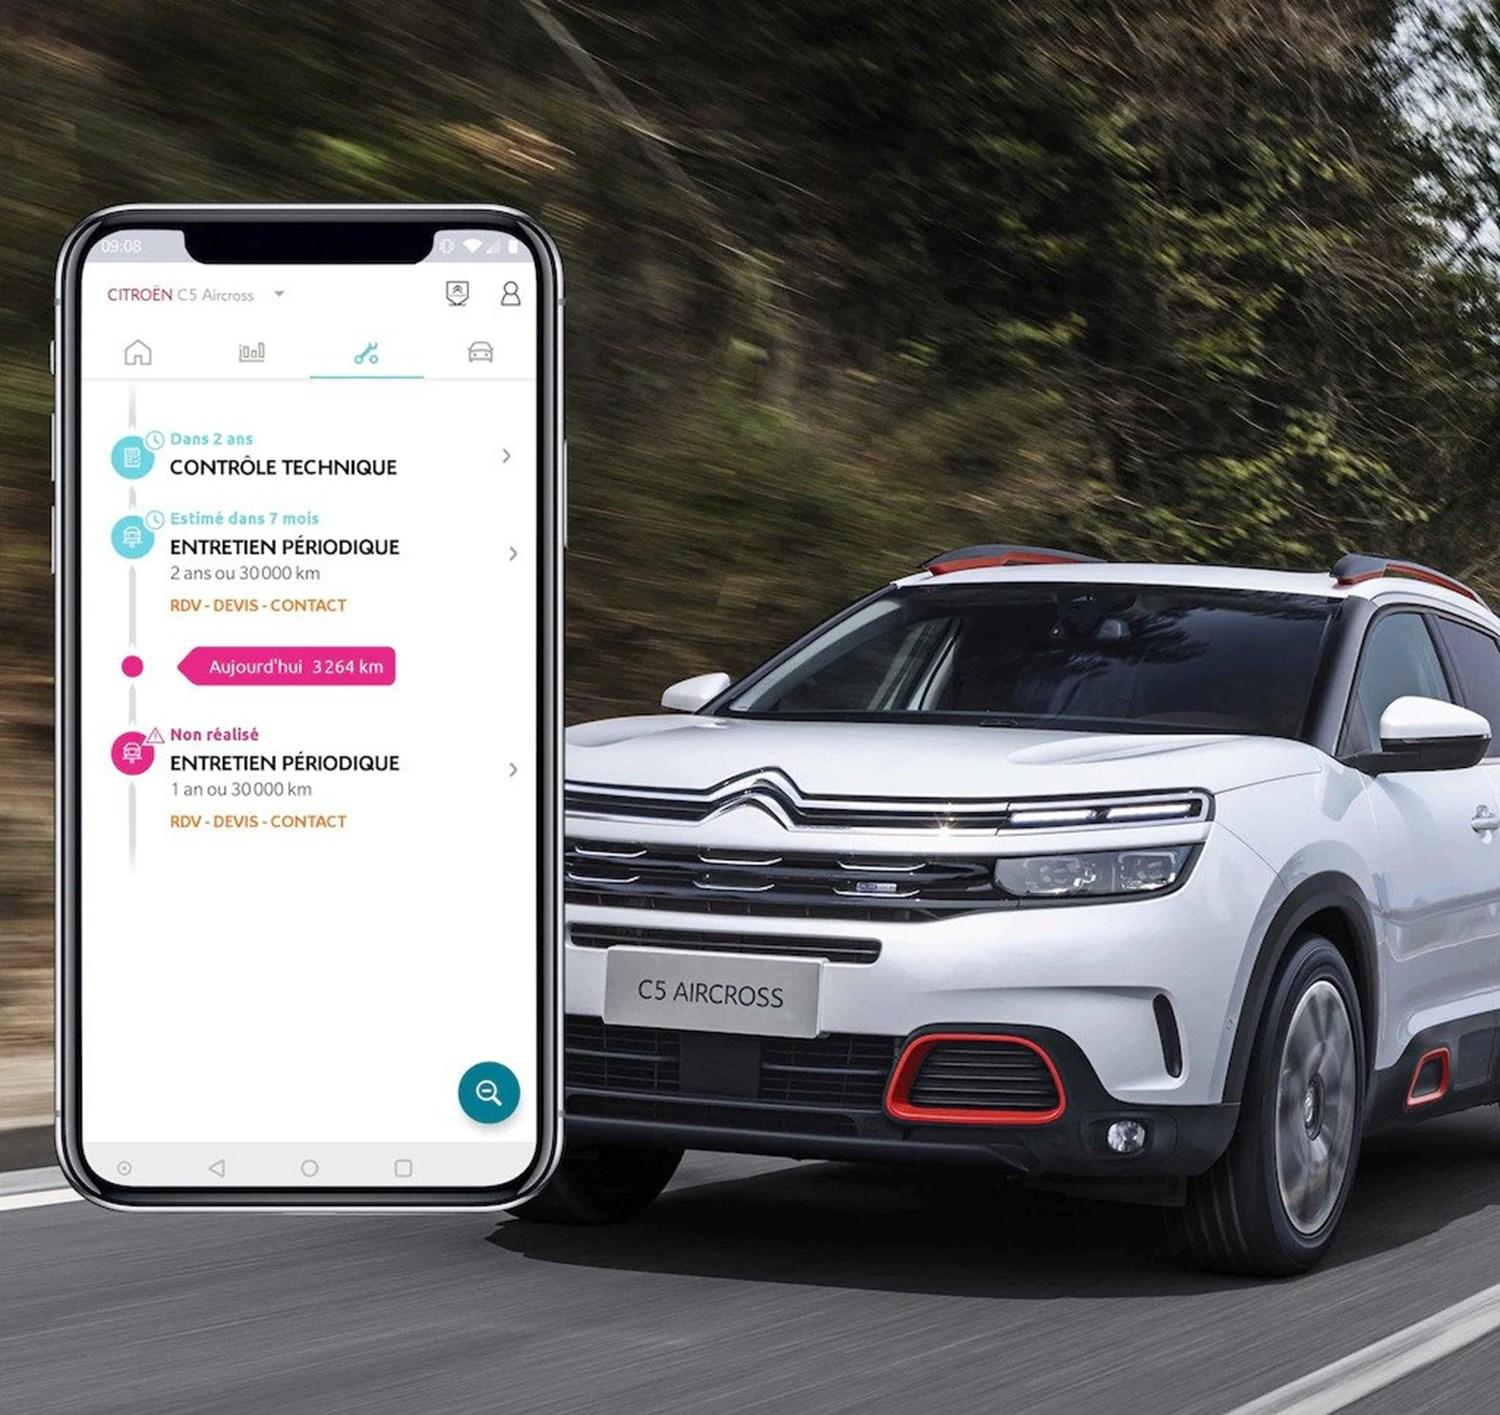 Example of Citroen MyApp on a smartphone with a Citroen driving in the background